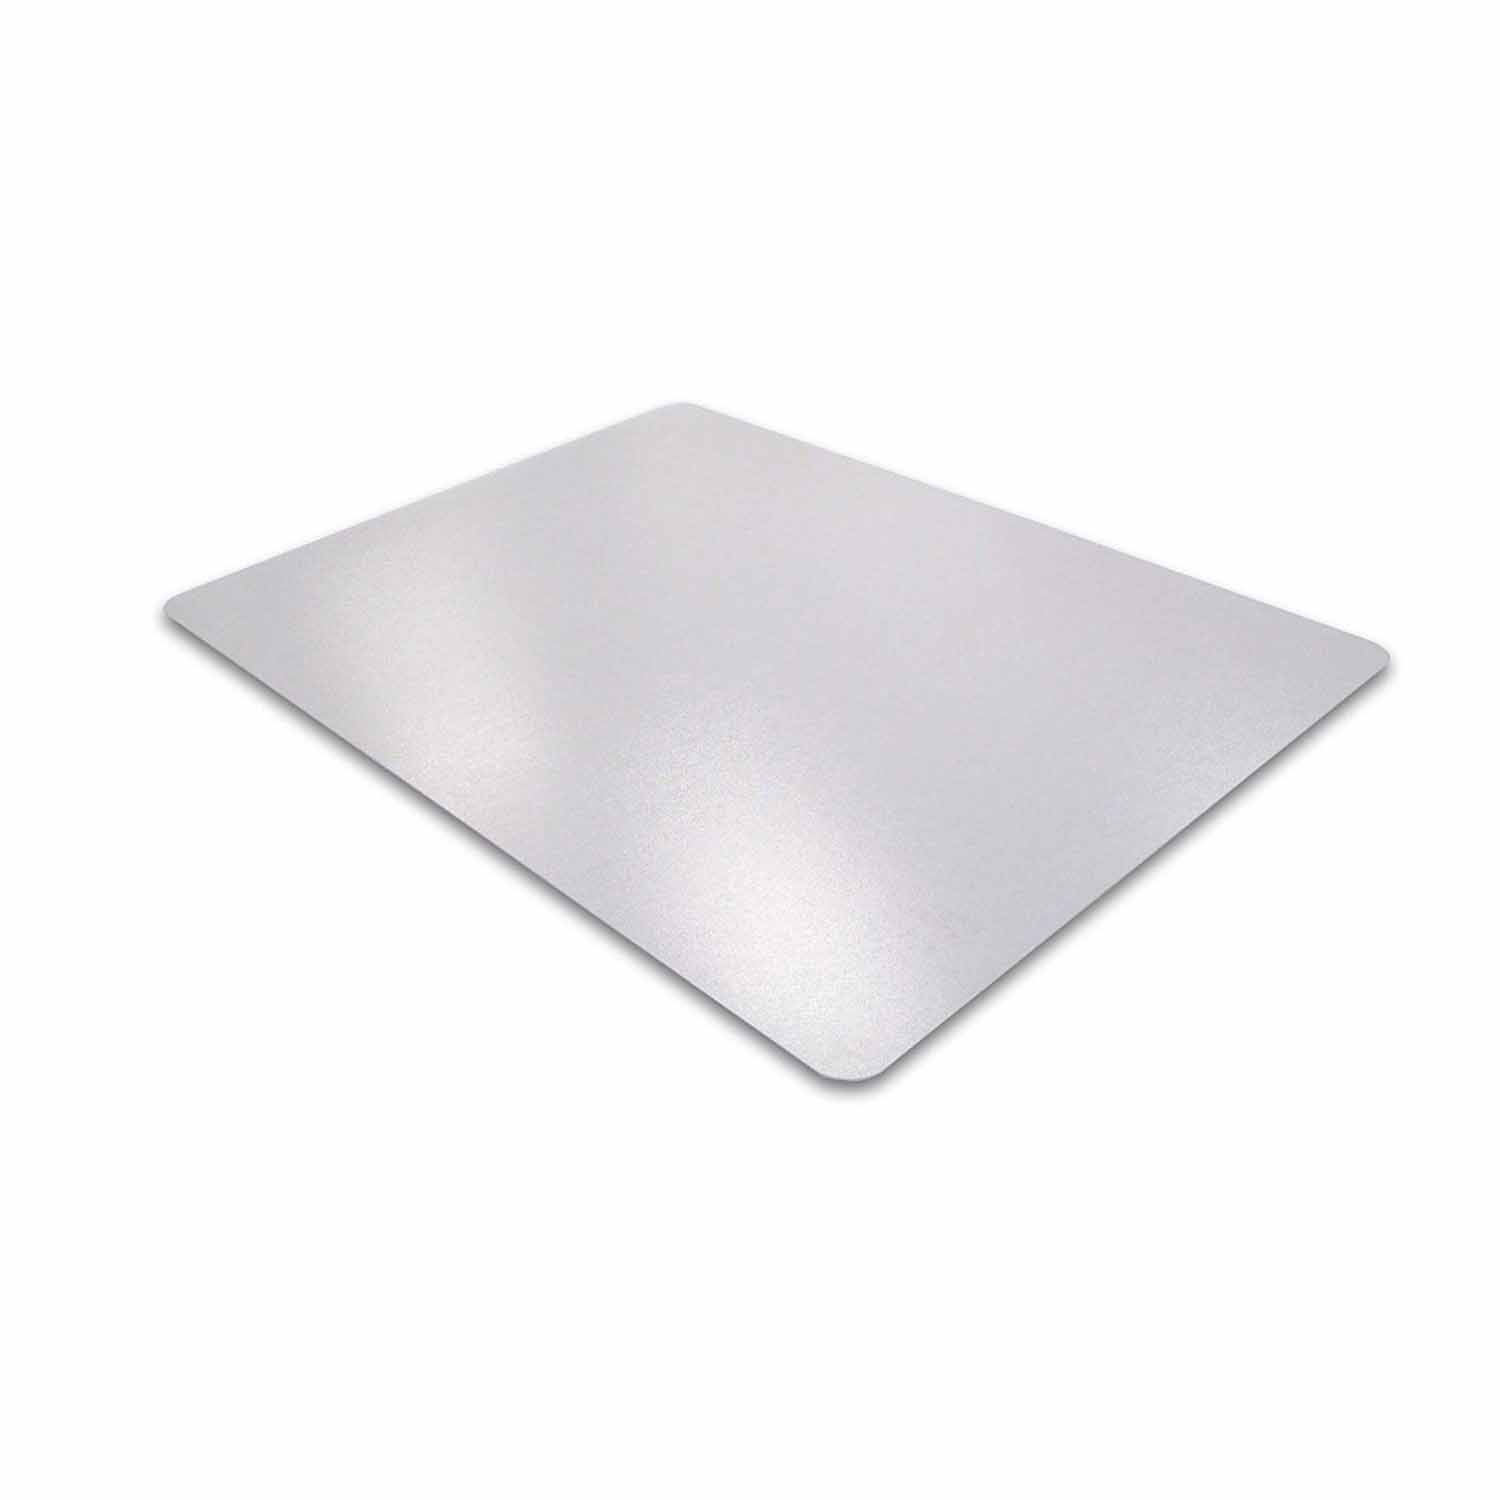 Floortex Anti-Slip Rectangular Chairmat For Tiled Floors - 120 x 135cm (pc)